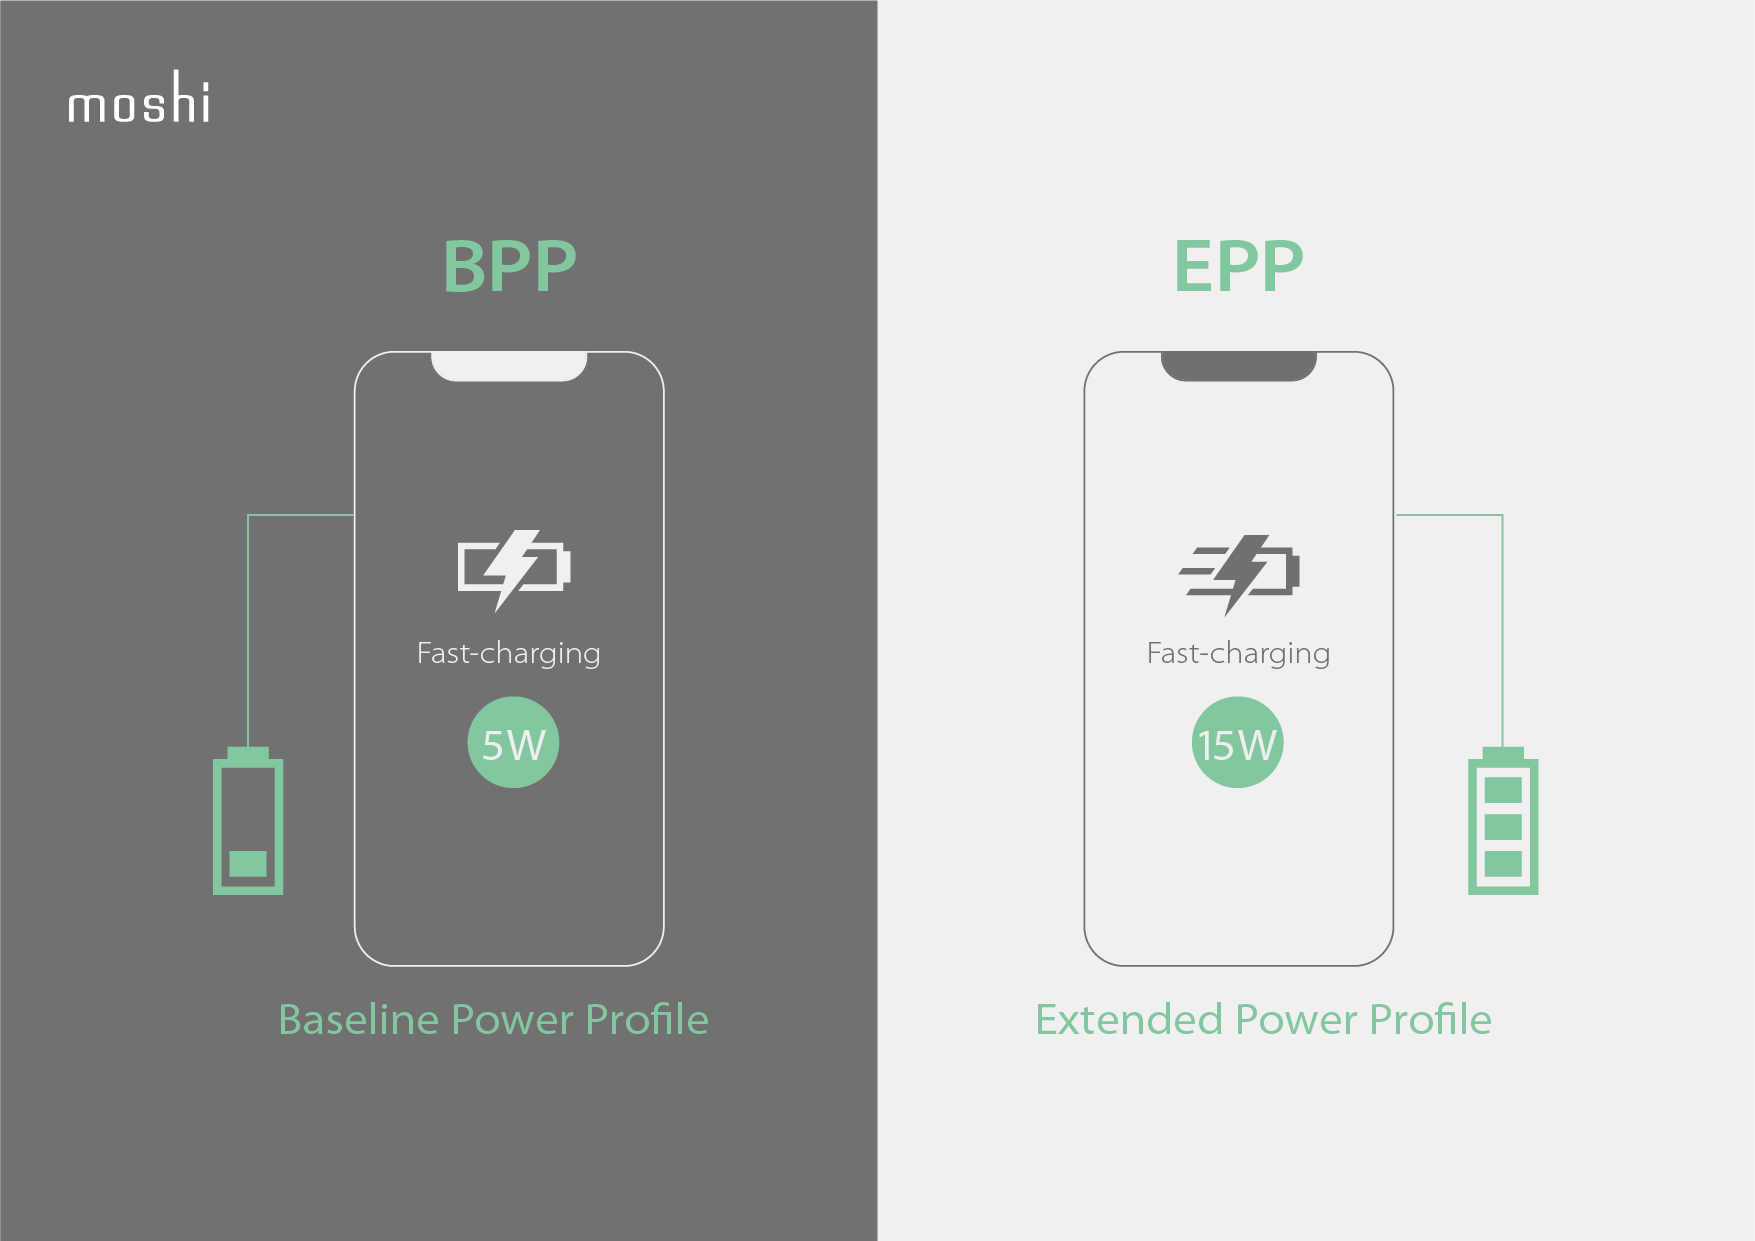 Illustration with side-by-side comparison of the maximum power output of the BPP and EPP profiles